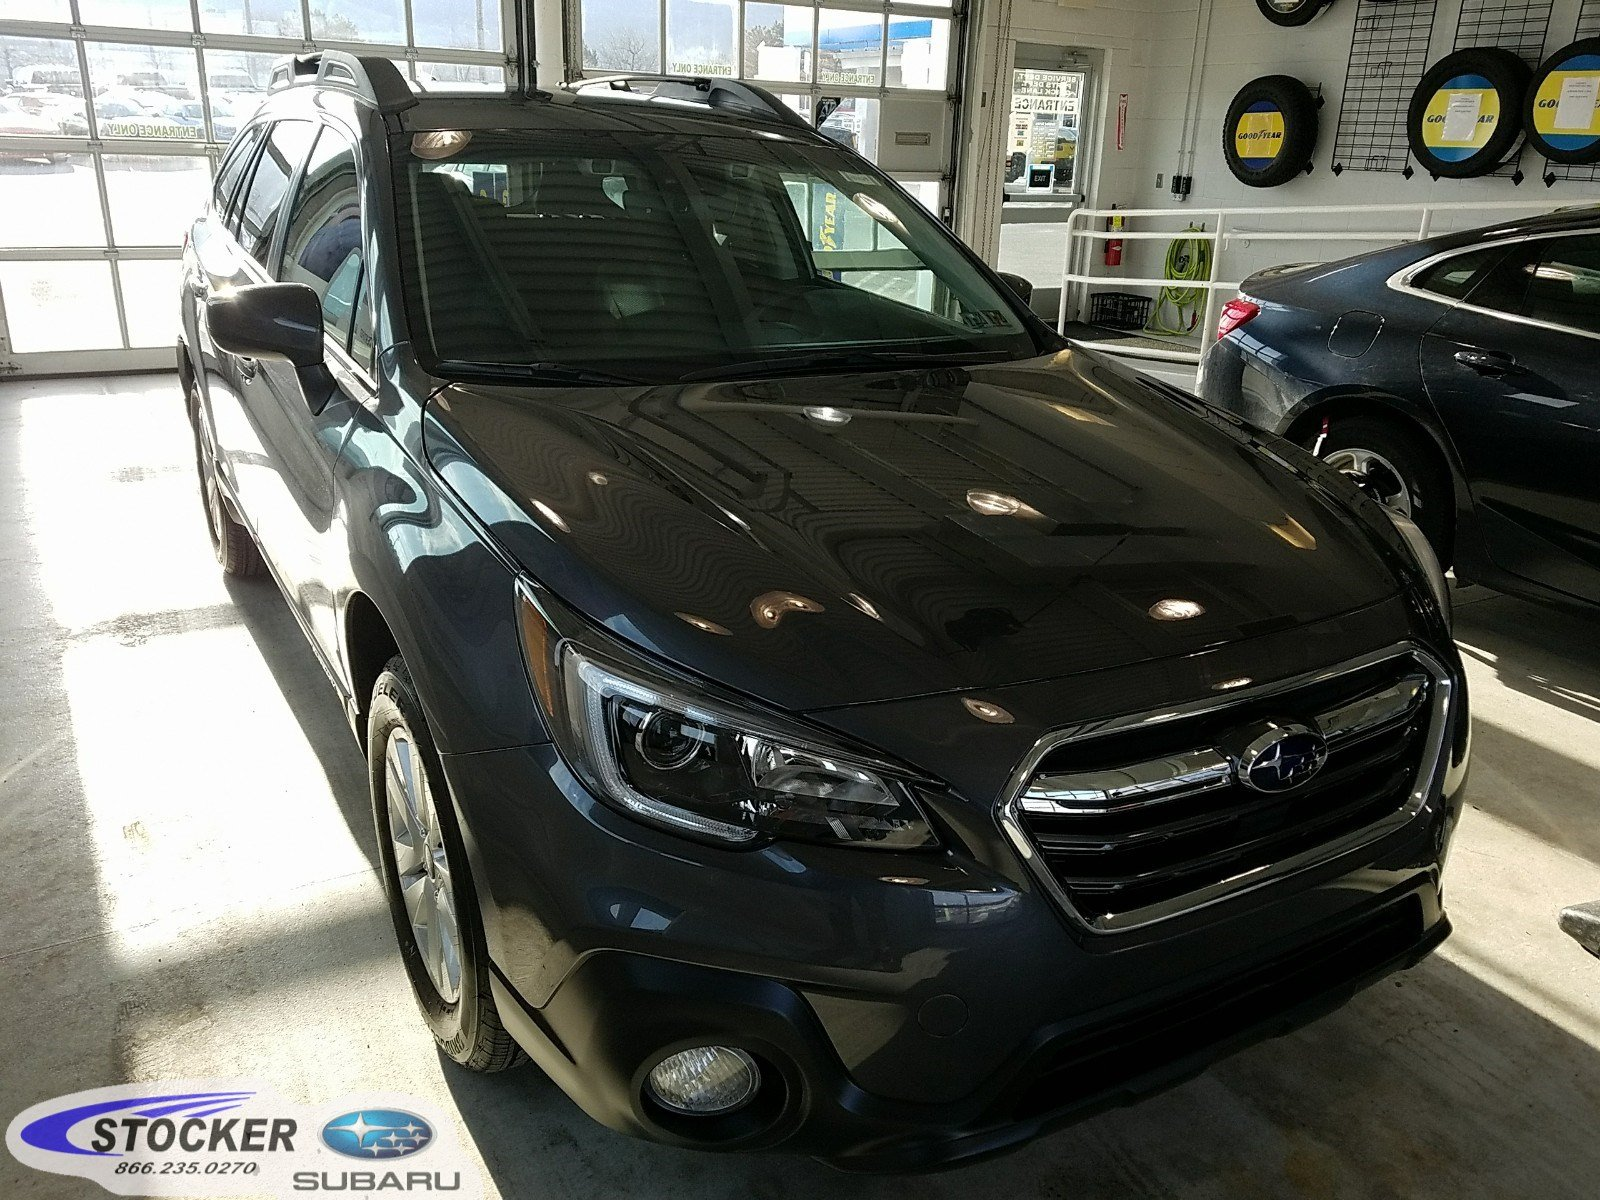 2019 Subaru Outback 2.5i Premium SUV for sale in State College, PA